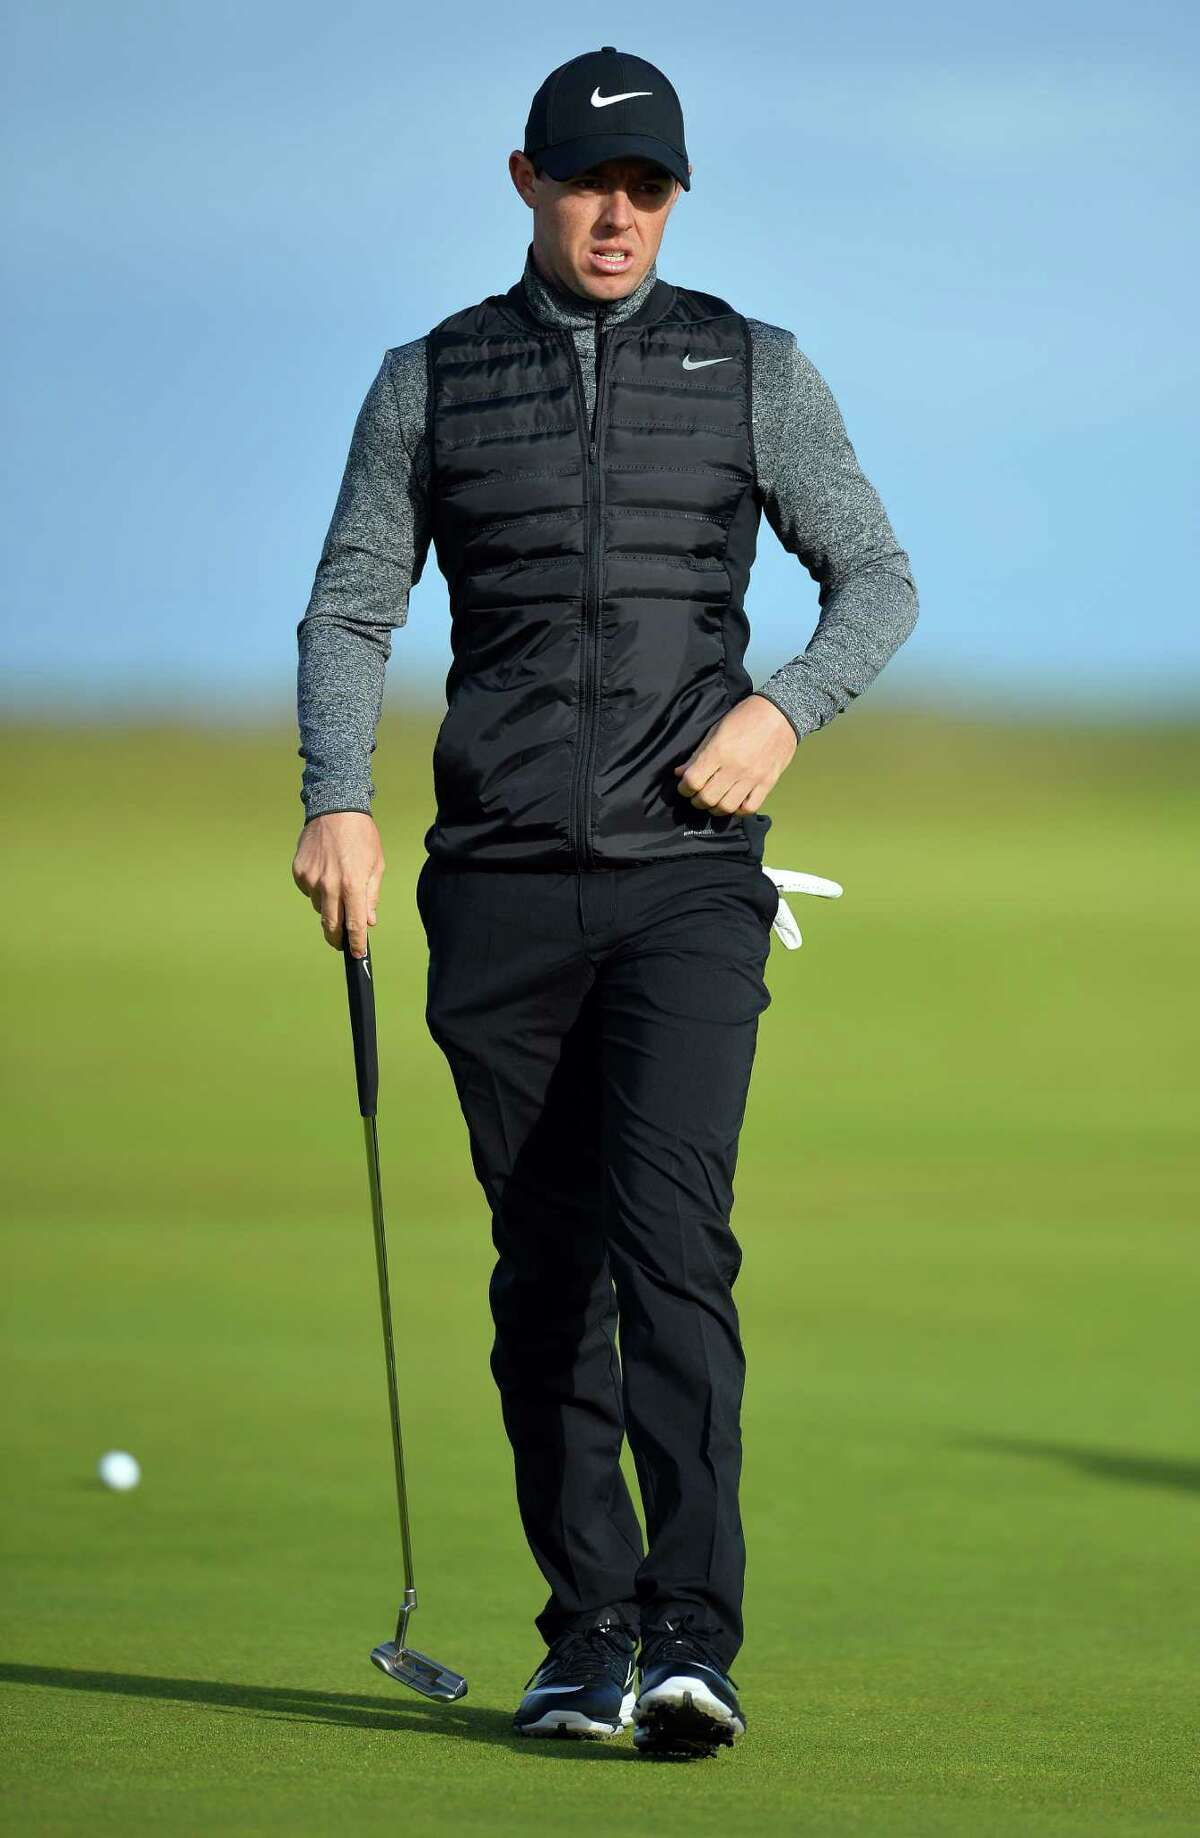 Northern Ireland's Rory McIlroy on the 2nd Green during practice on July 13, 2016, ahead of the 2016 British Open Golf Championship at Royal Troon in Scotland. Treacherous and unfamiliar challenges lie in wait as the British Open returns to Royal Troon this week and Rory McIlroy returns to the hunt for the Claret Jug. / AFP PHOTO / GLYN KIRK / RESTRICTED TO EDITORIAL USEGLYN KIRK/AFP/Getty Images